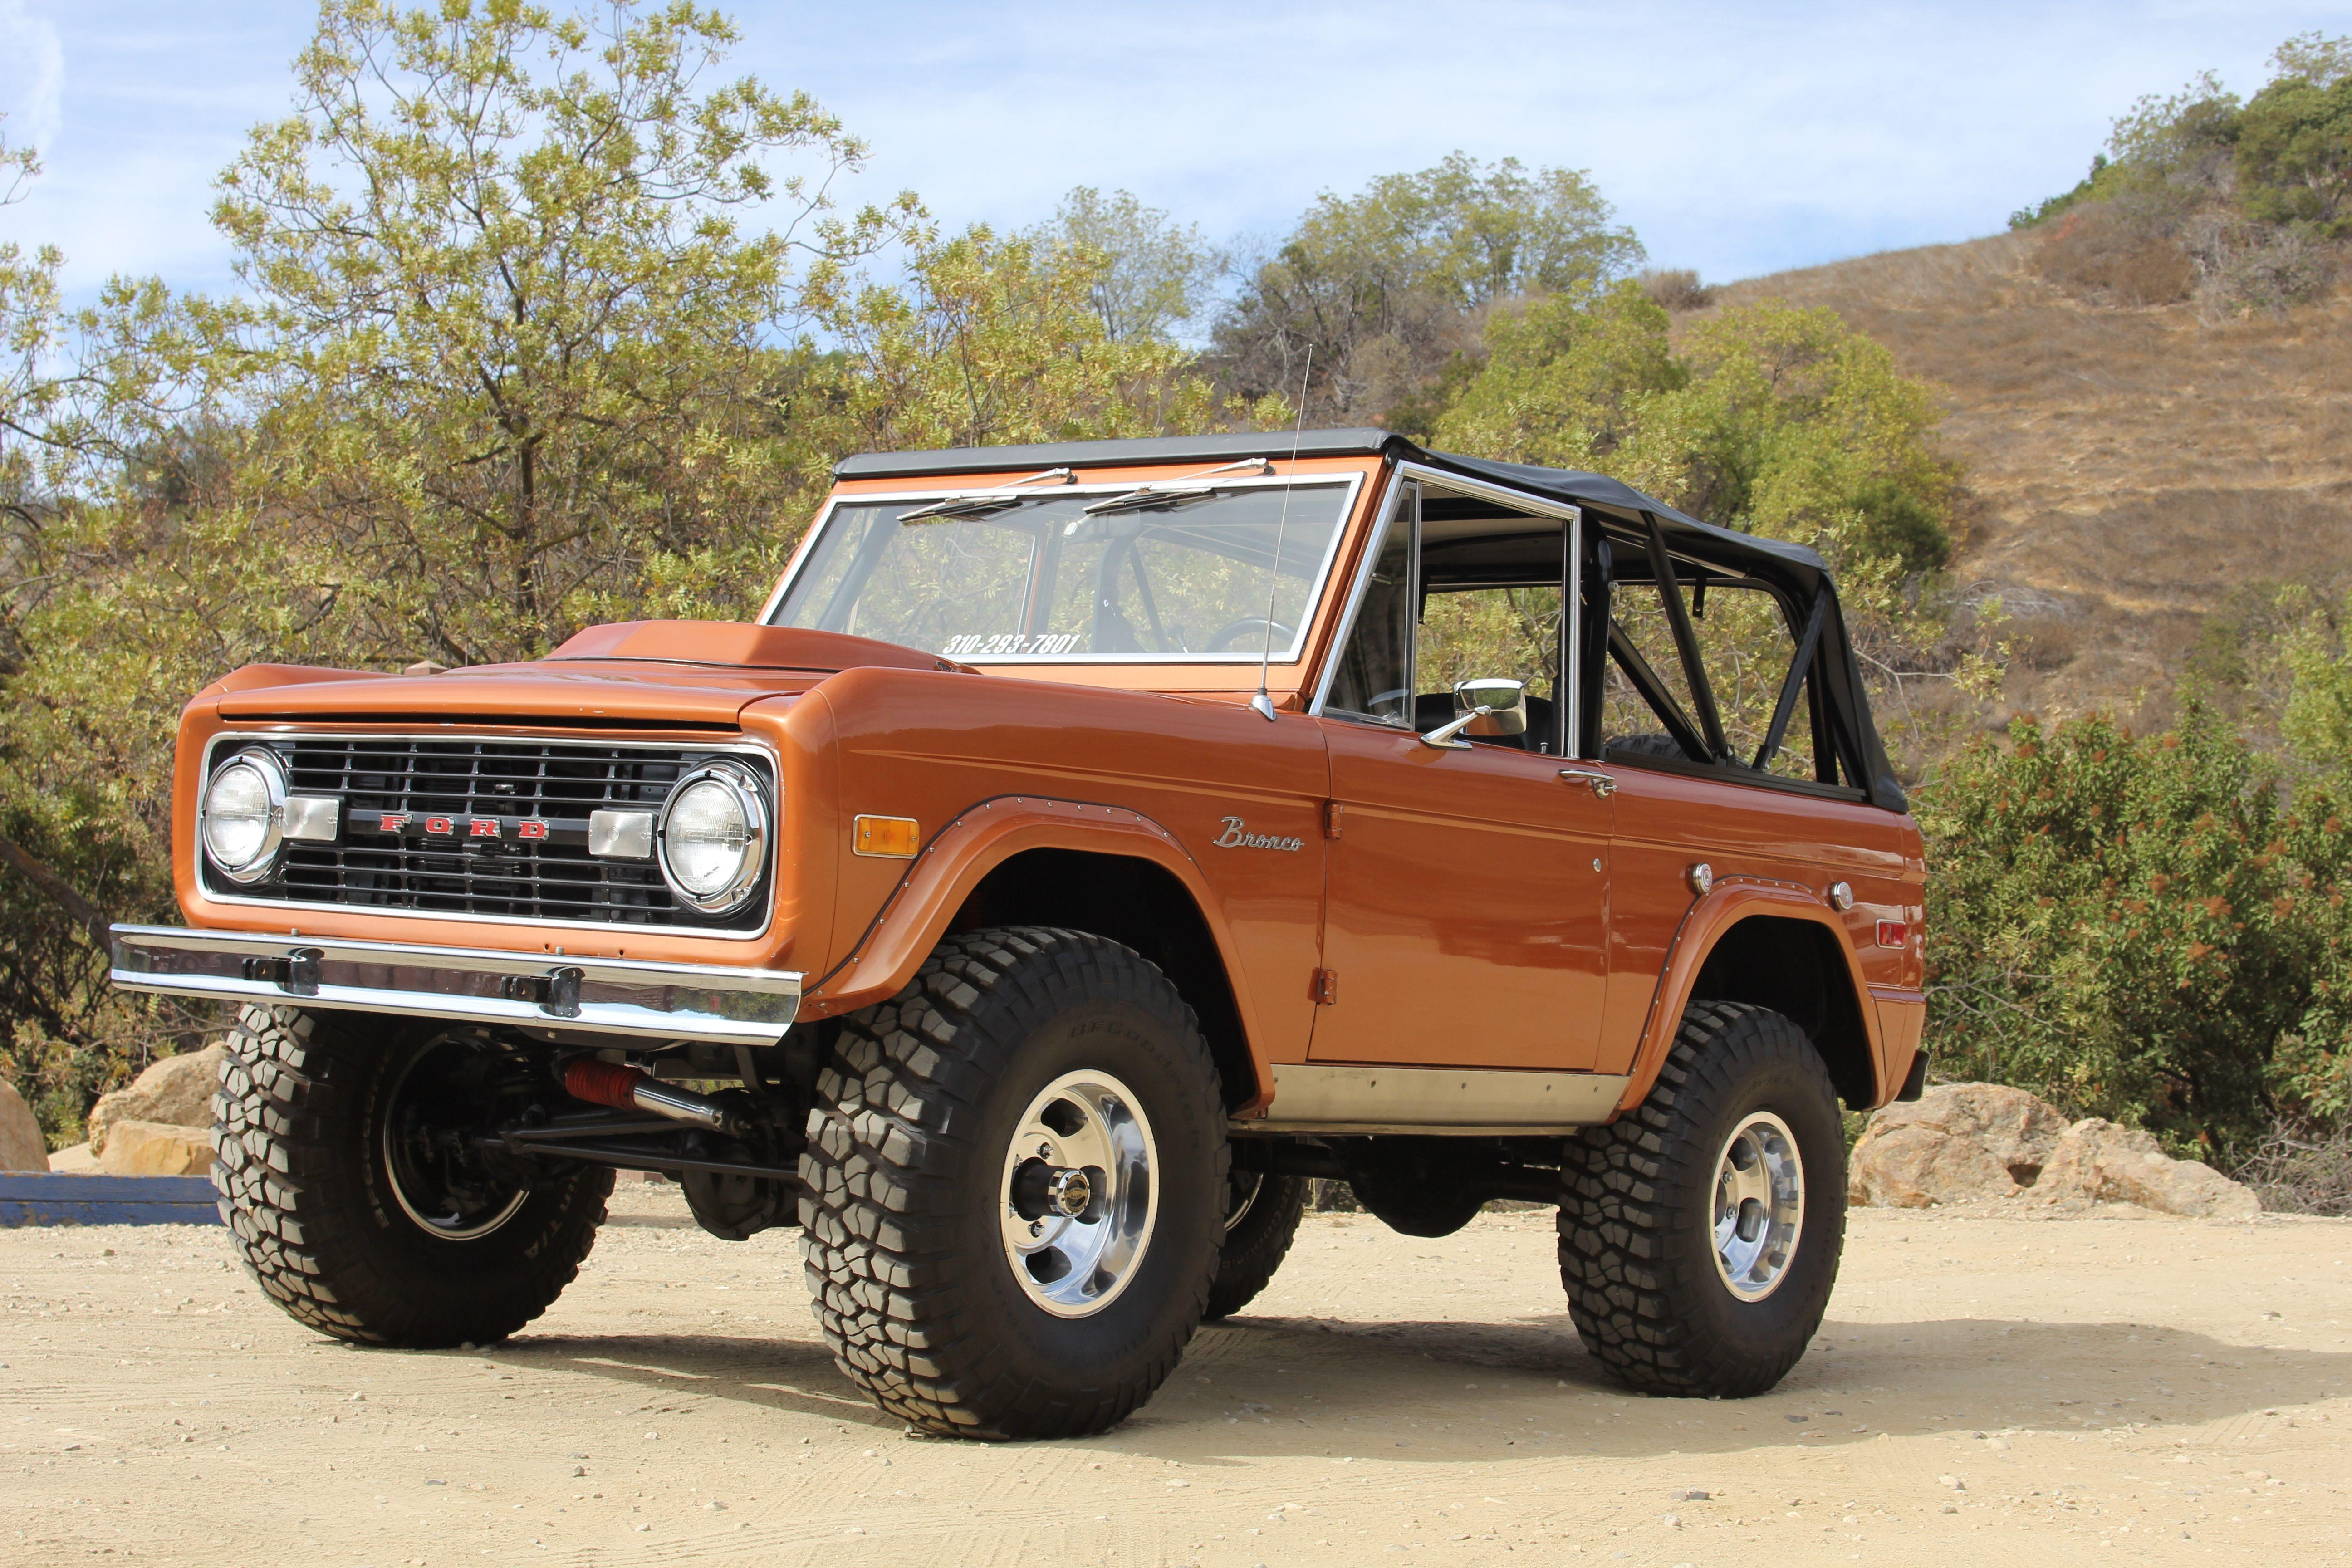 Ford Bronco Wallpapers - Wallpaper Cave